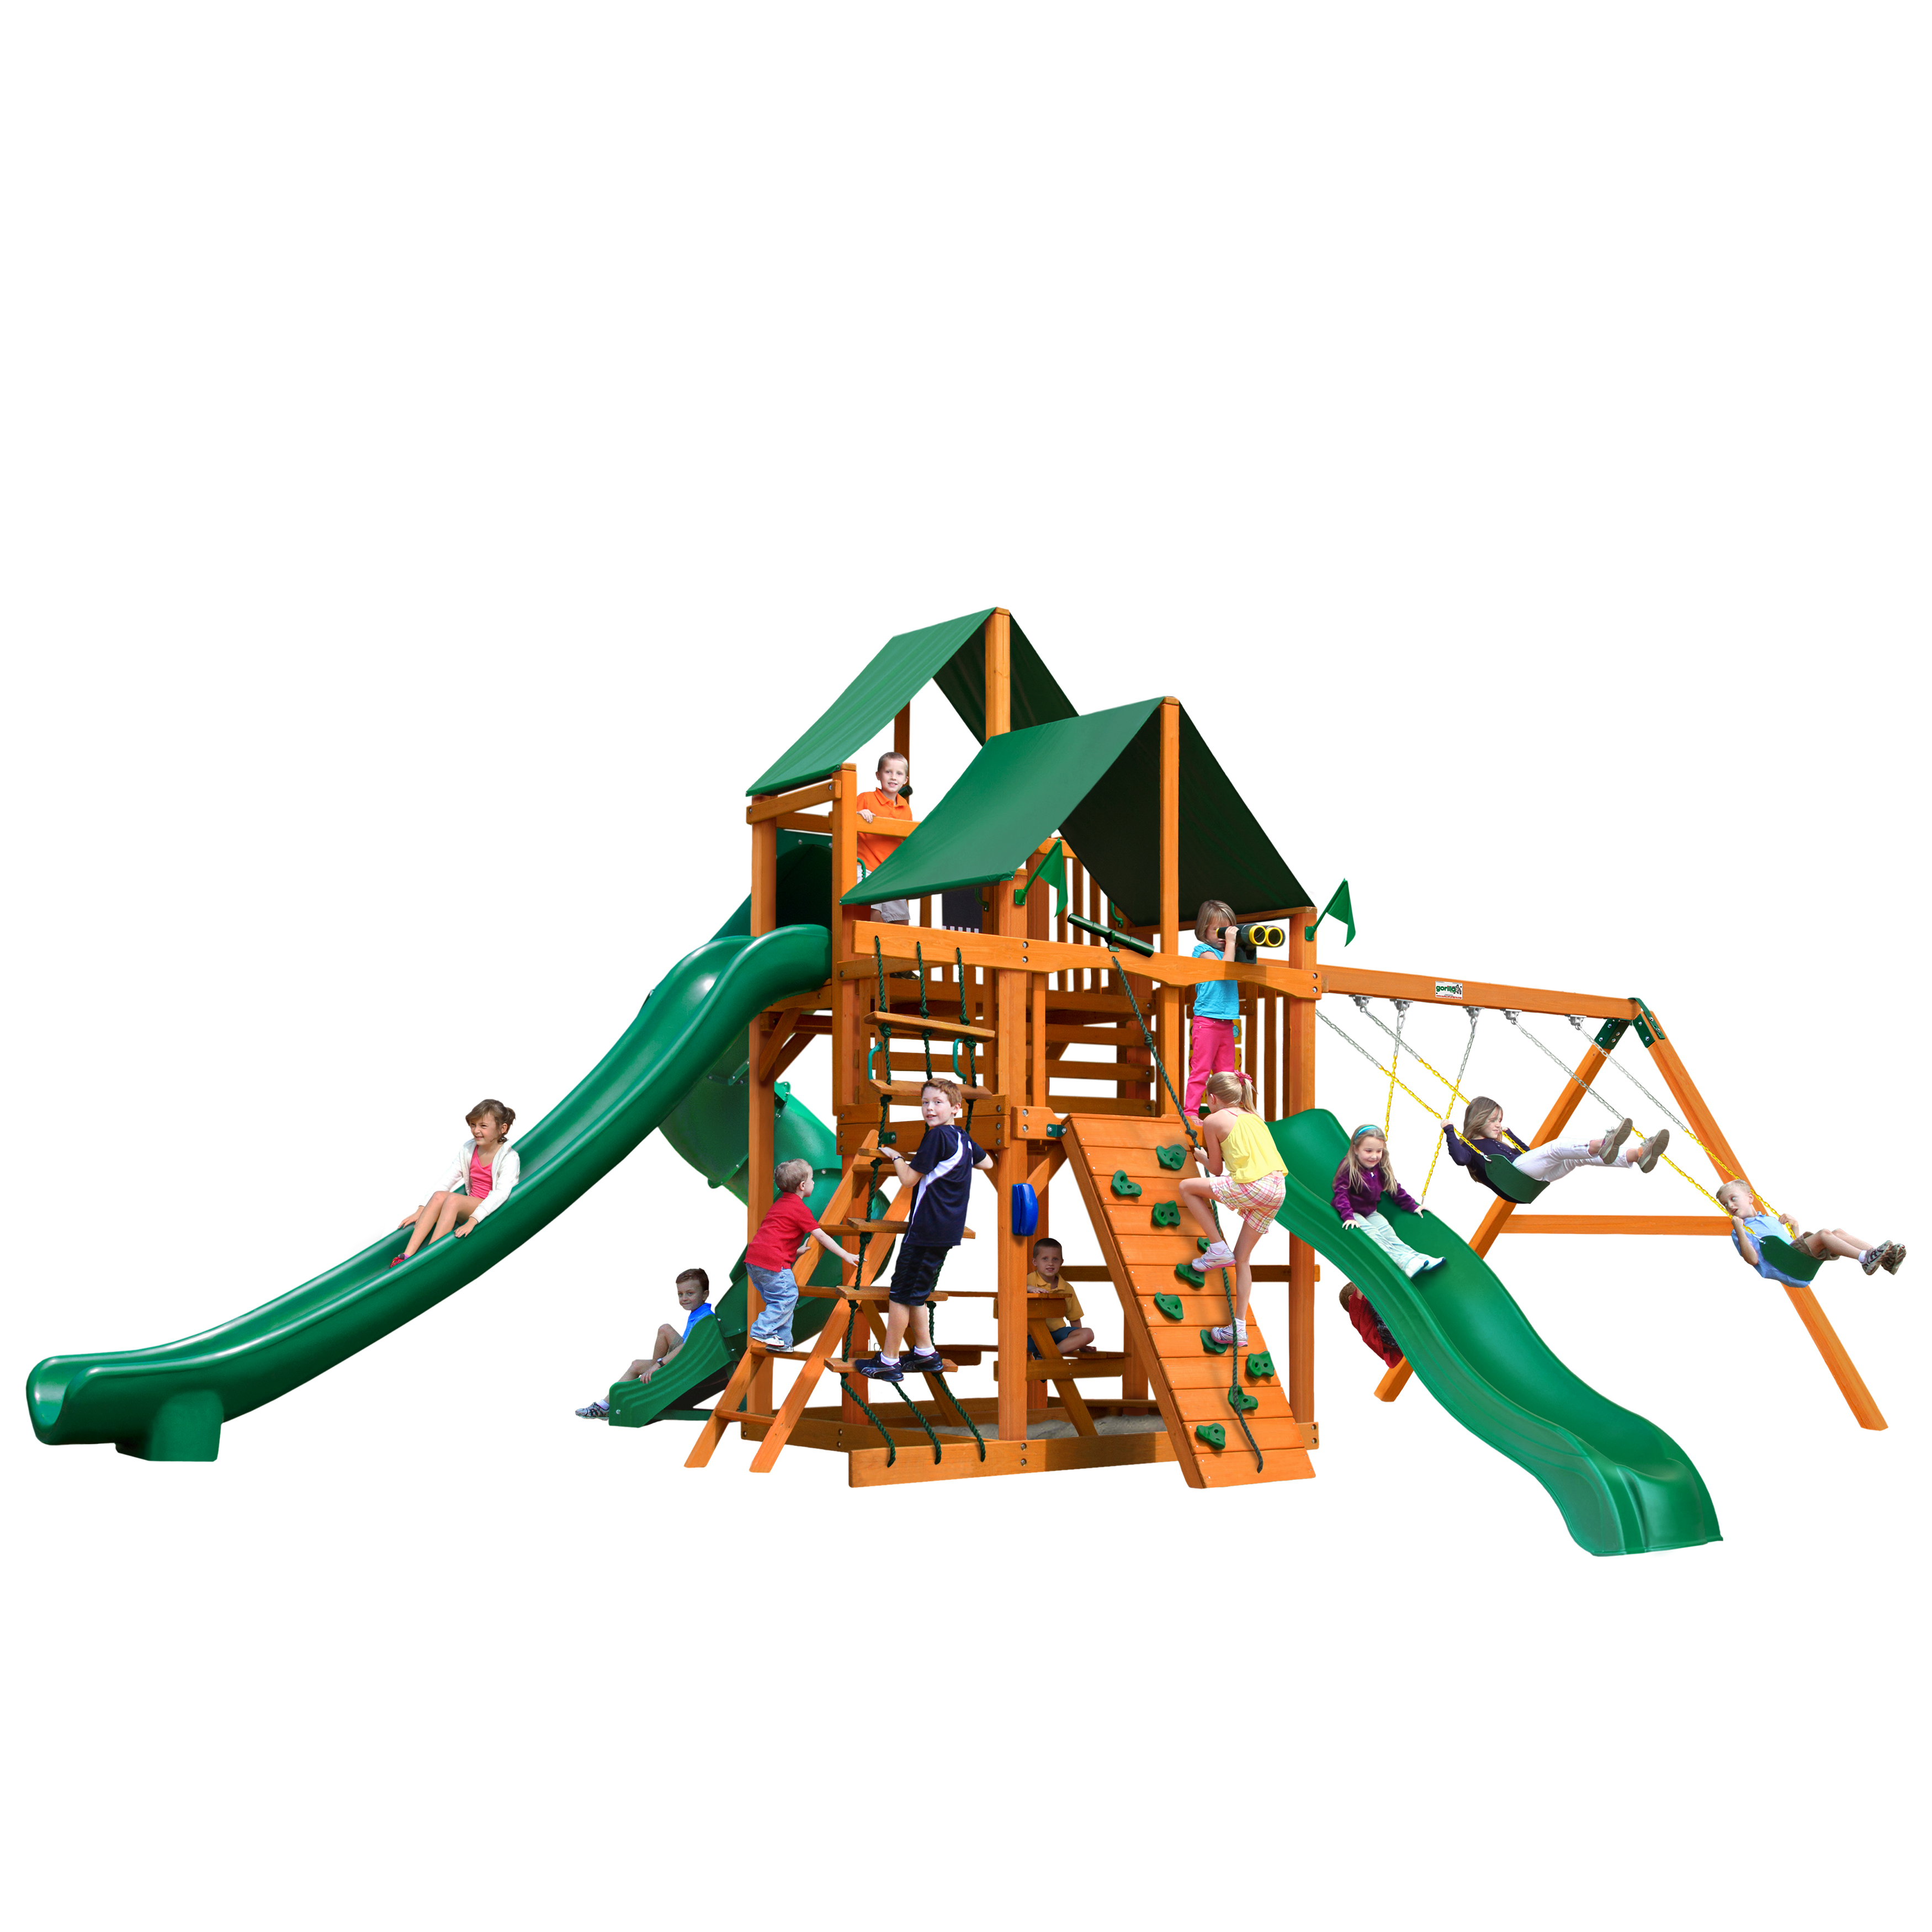 Gorilla Playsets Great Skye II Wooden Swing Set with 2 Sunbrella® Canvas Canopies, 3 Slides, and Rope Ladder